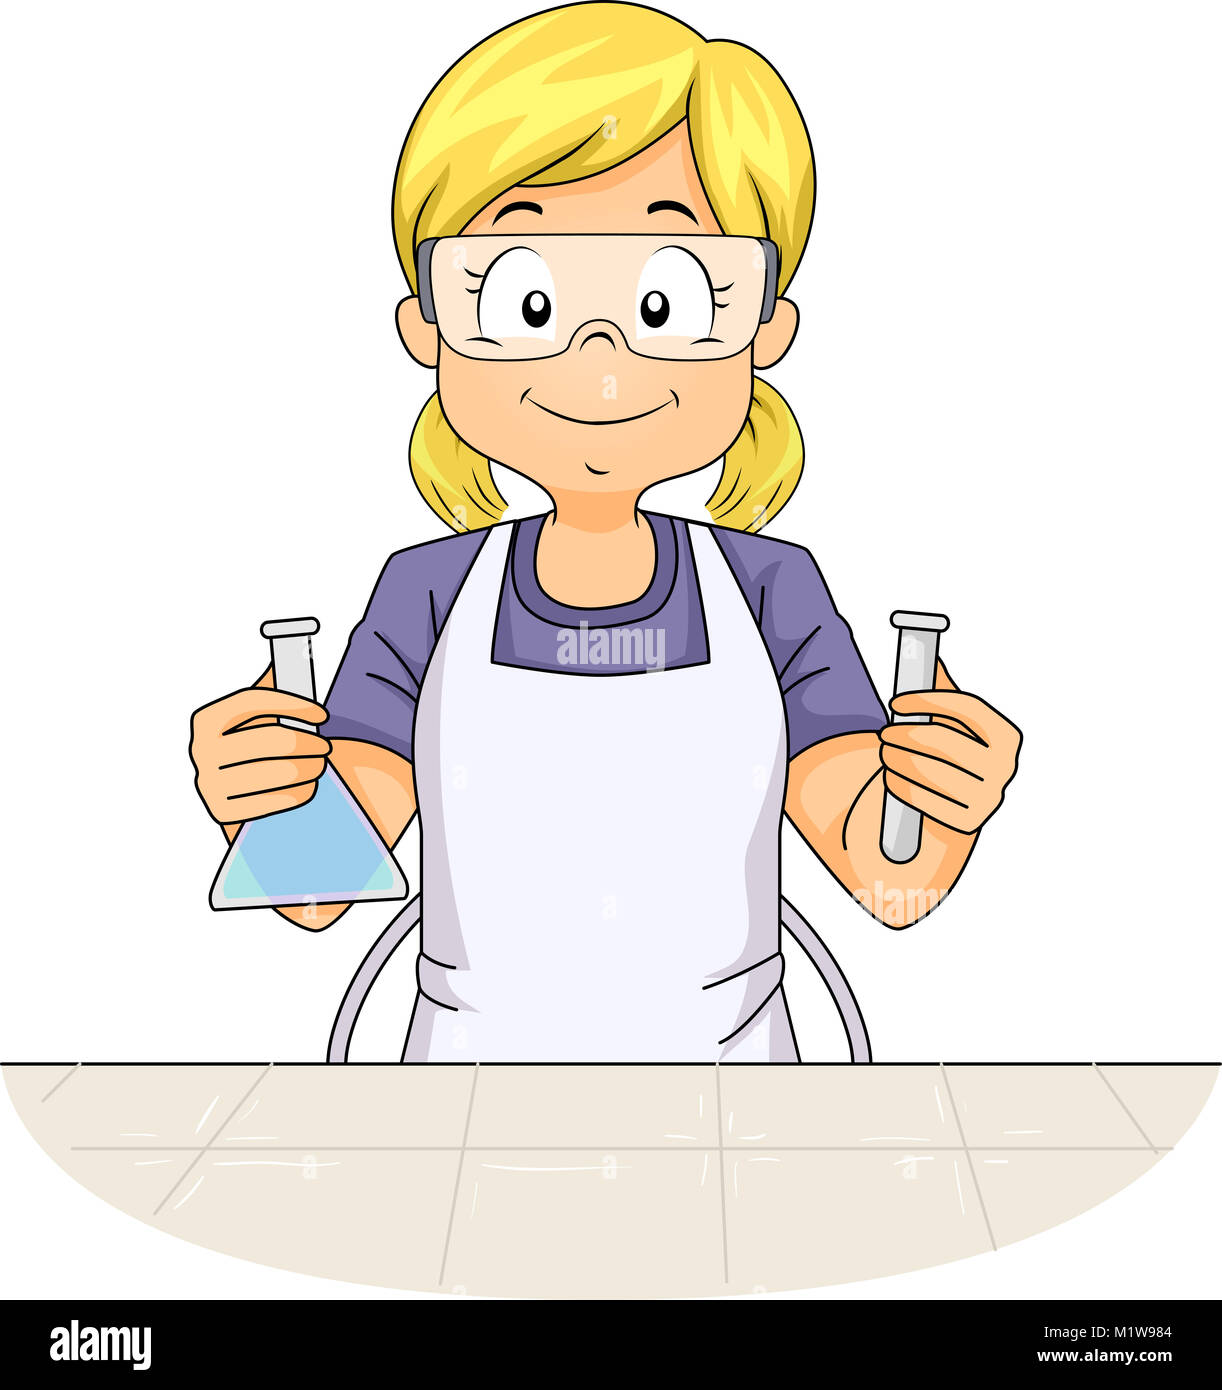 illustration featuring a little girl wearing an apron and a pair of